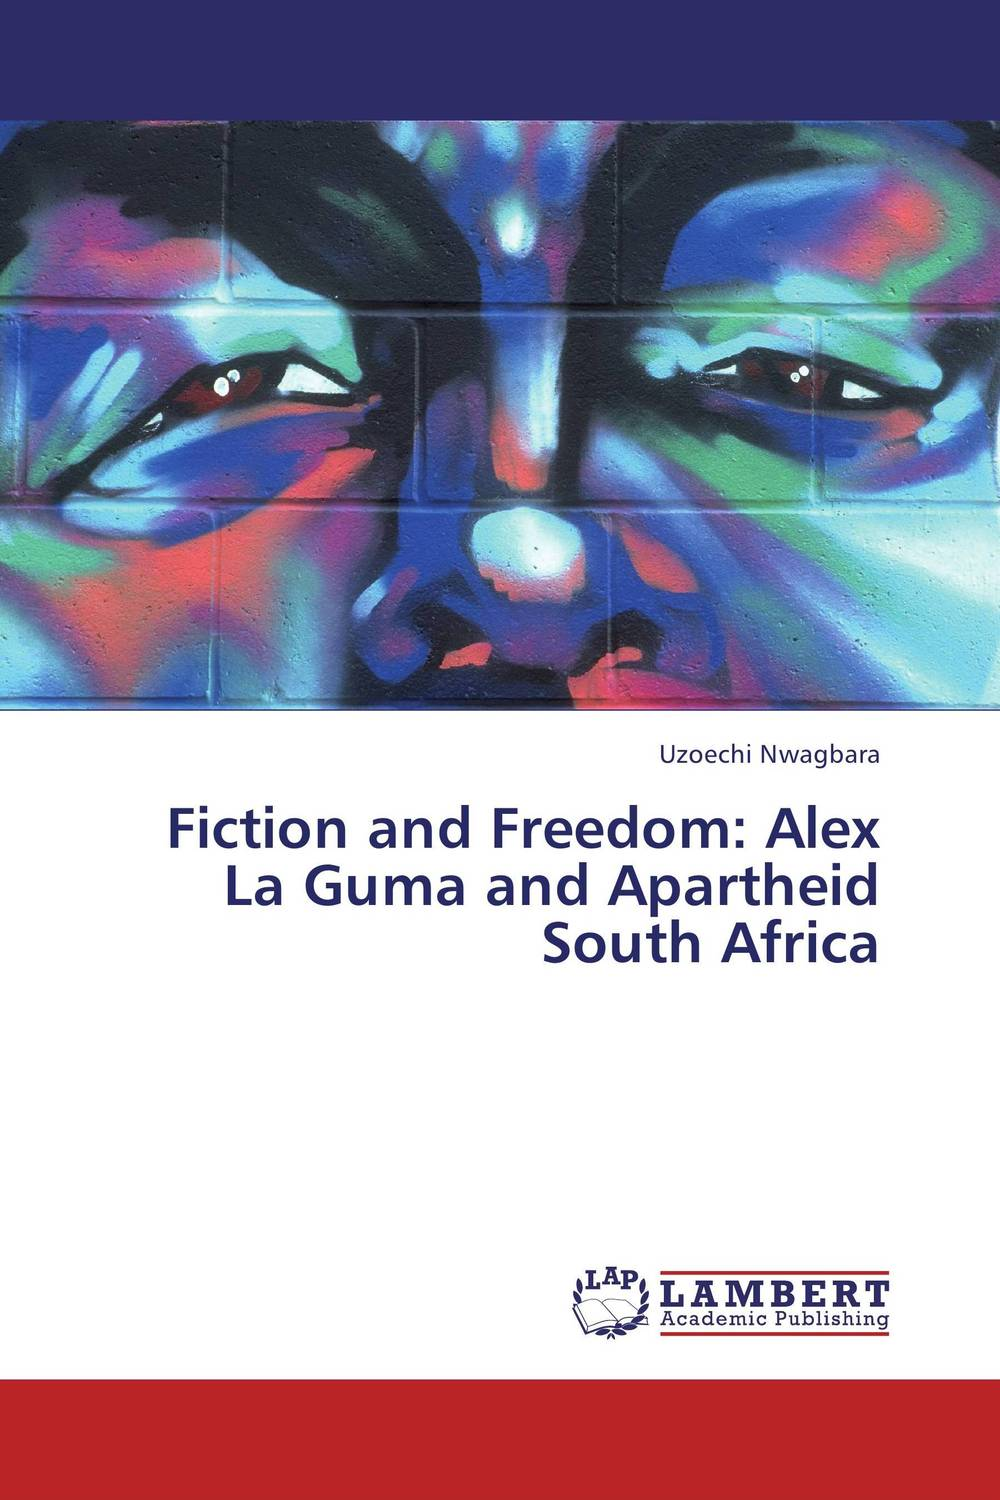 Fiction and Freedom: Alex La Guma and Apartheid South Africa south africa argentina